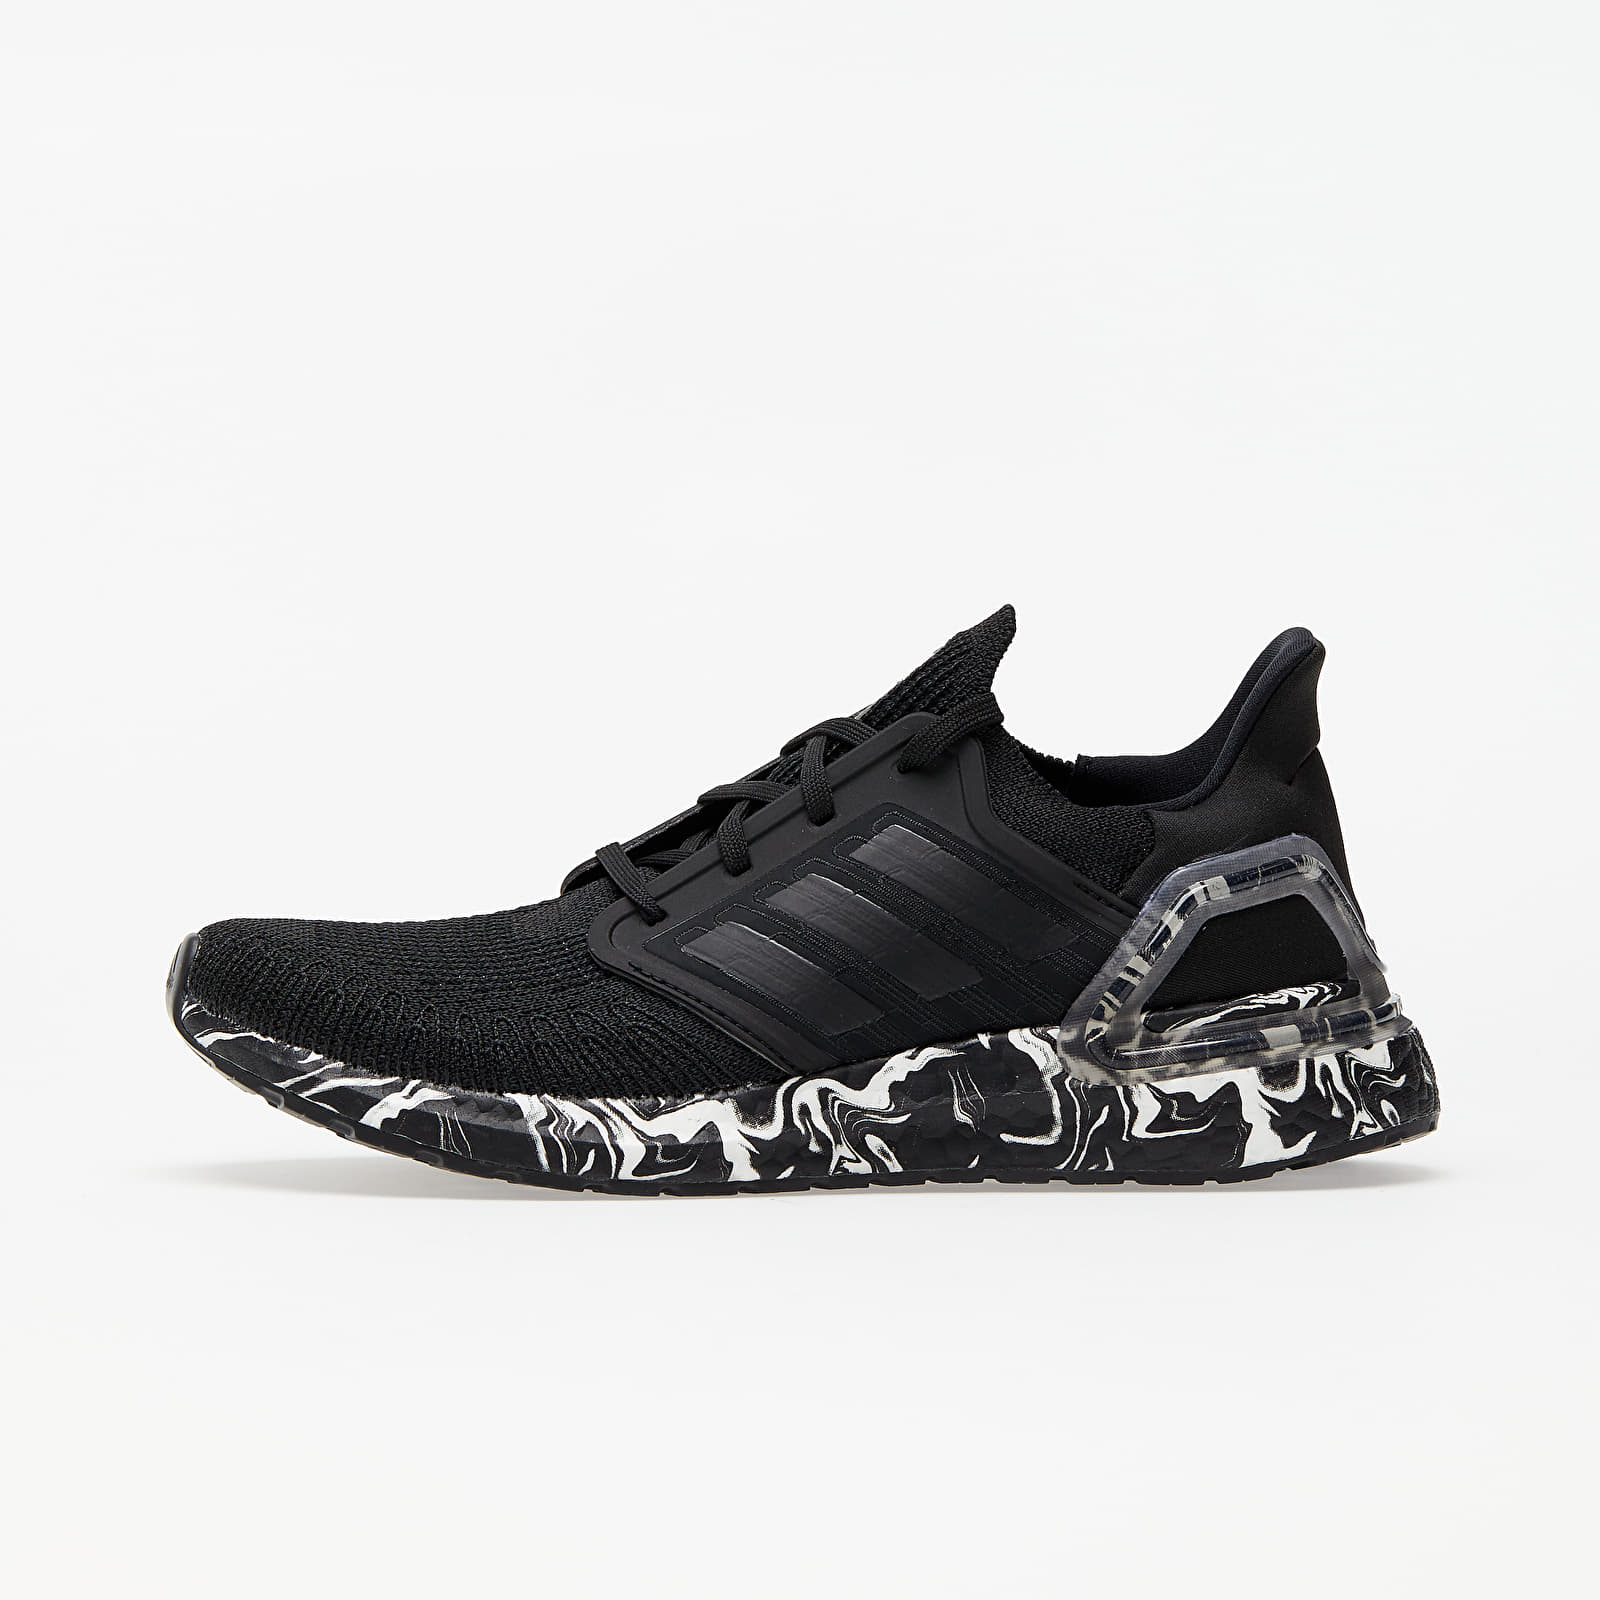 Chaussures et baskets femme adidas UltraBOOST 20 W Core Black/ Core Black/ Ftw White